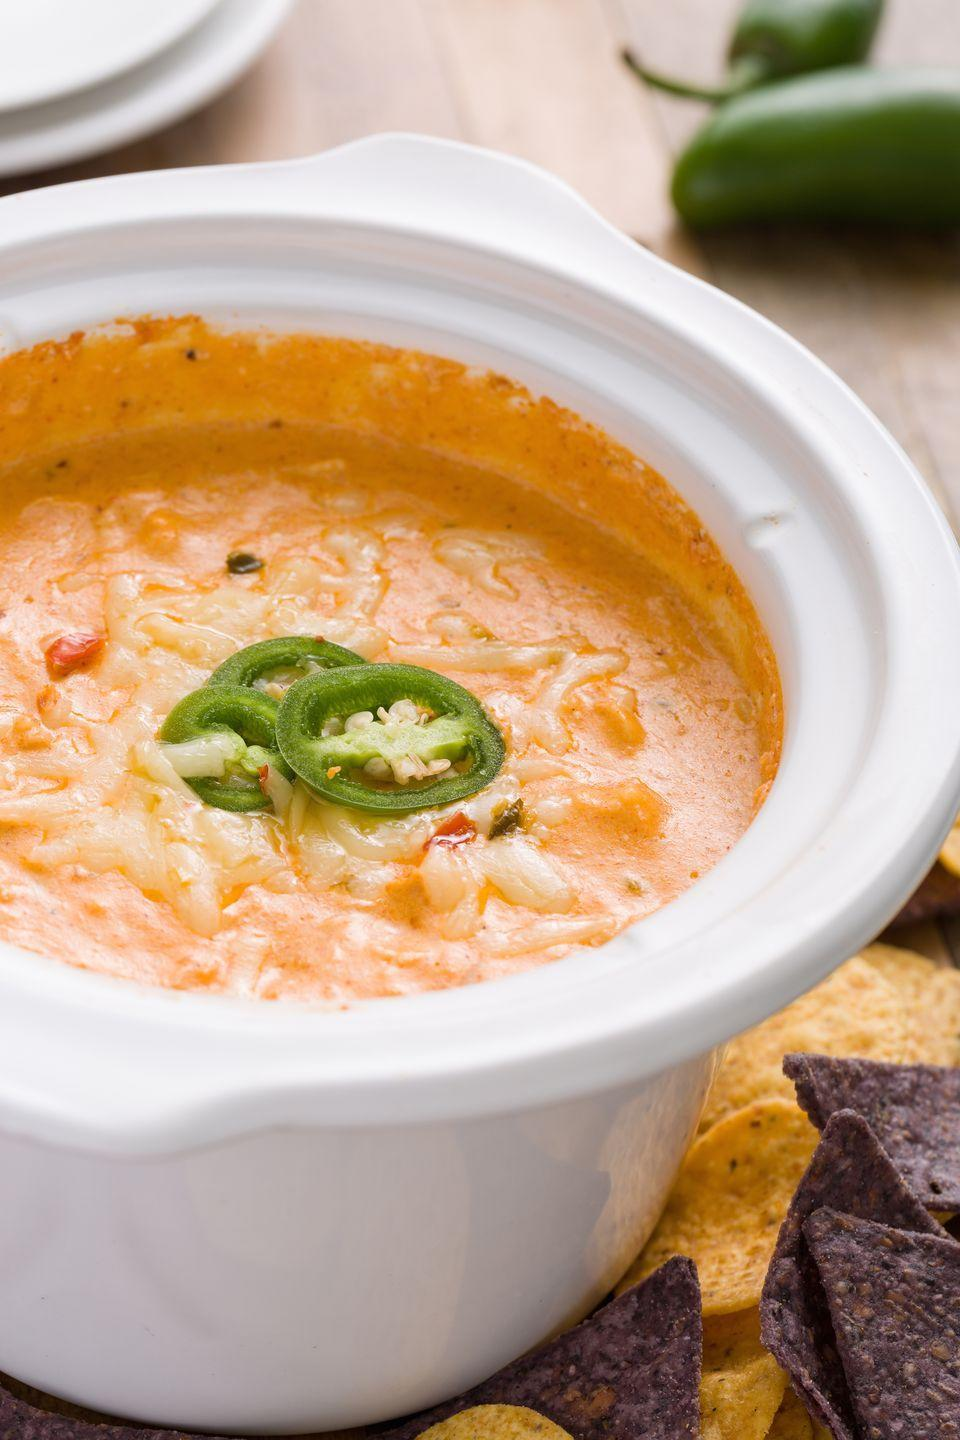 """<p>The perfect party starter.<br><br>Get the recipe from <a href=""""https://www.delish.com/cooking/recipe-ideas/recipes/a44668/slow-cooker-chicken-enchilada-dip-recipe/"""" rel=""""nofollow noopener"""" target=""""_blank"""" data-ylk=""""slk:Delish"""" class=""""link rapid-noclick-resp"""">Delish</a>.</p>"""